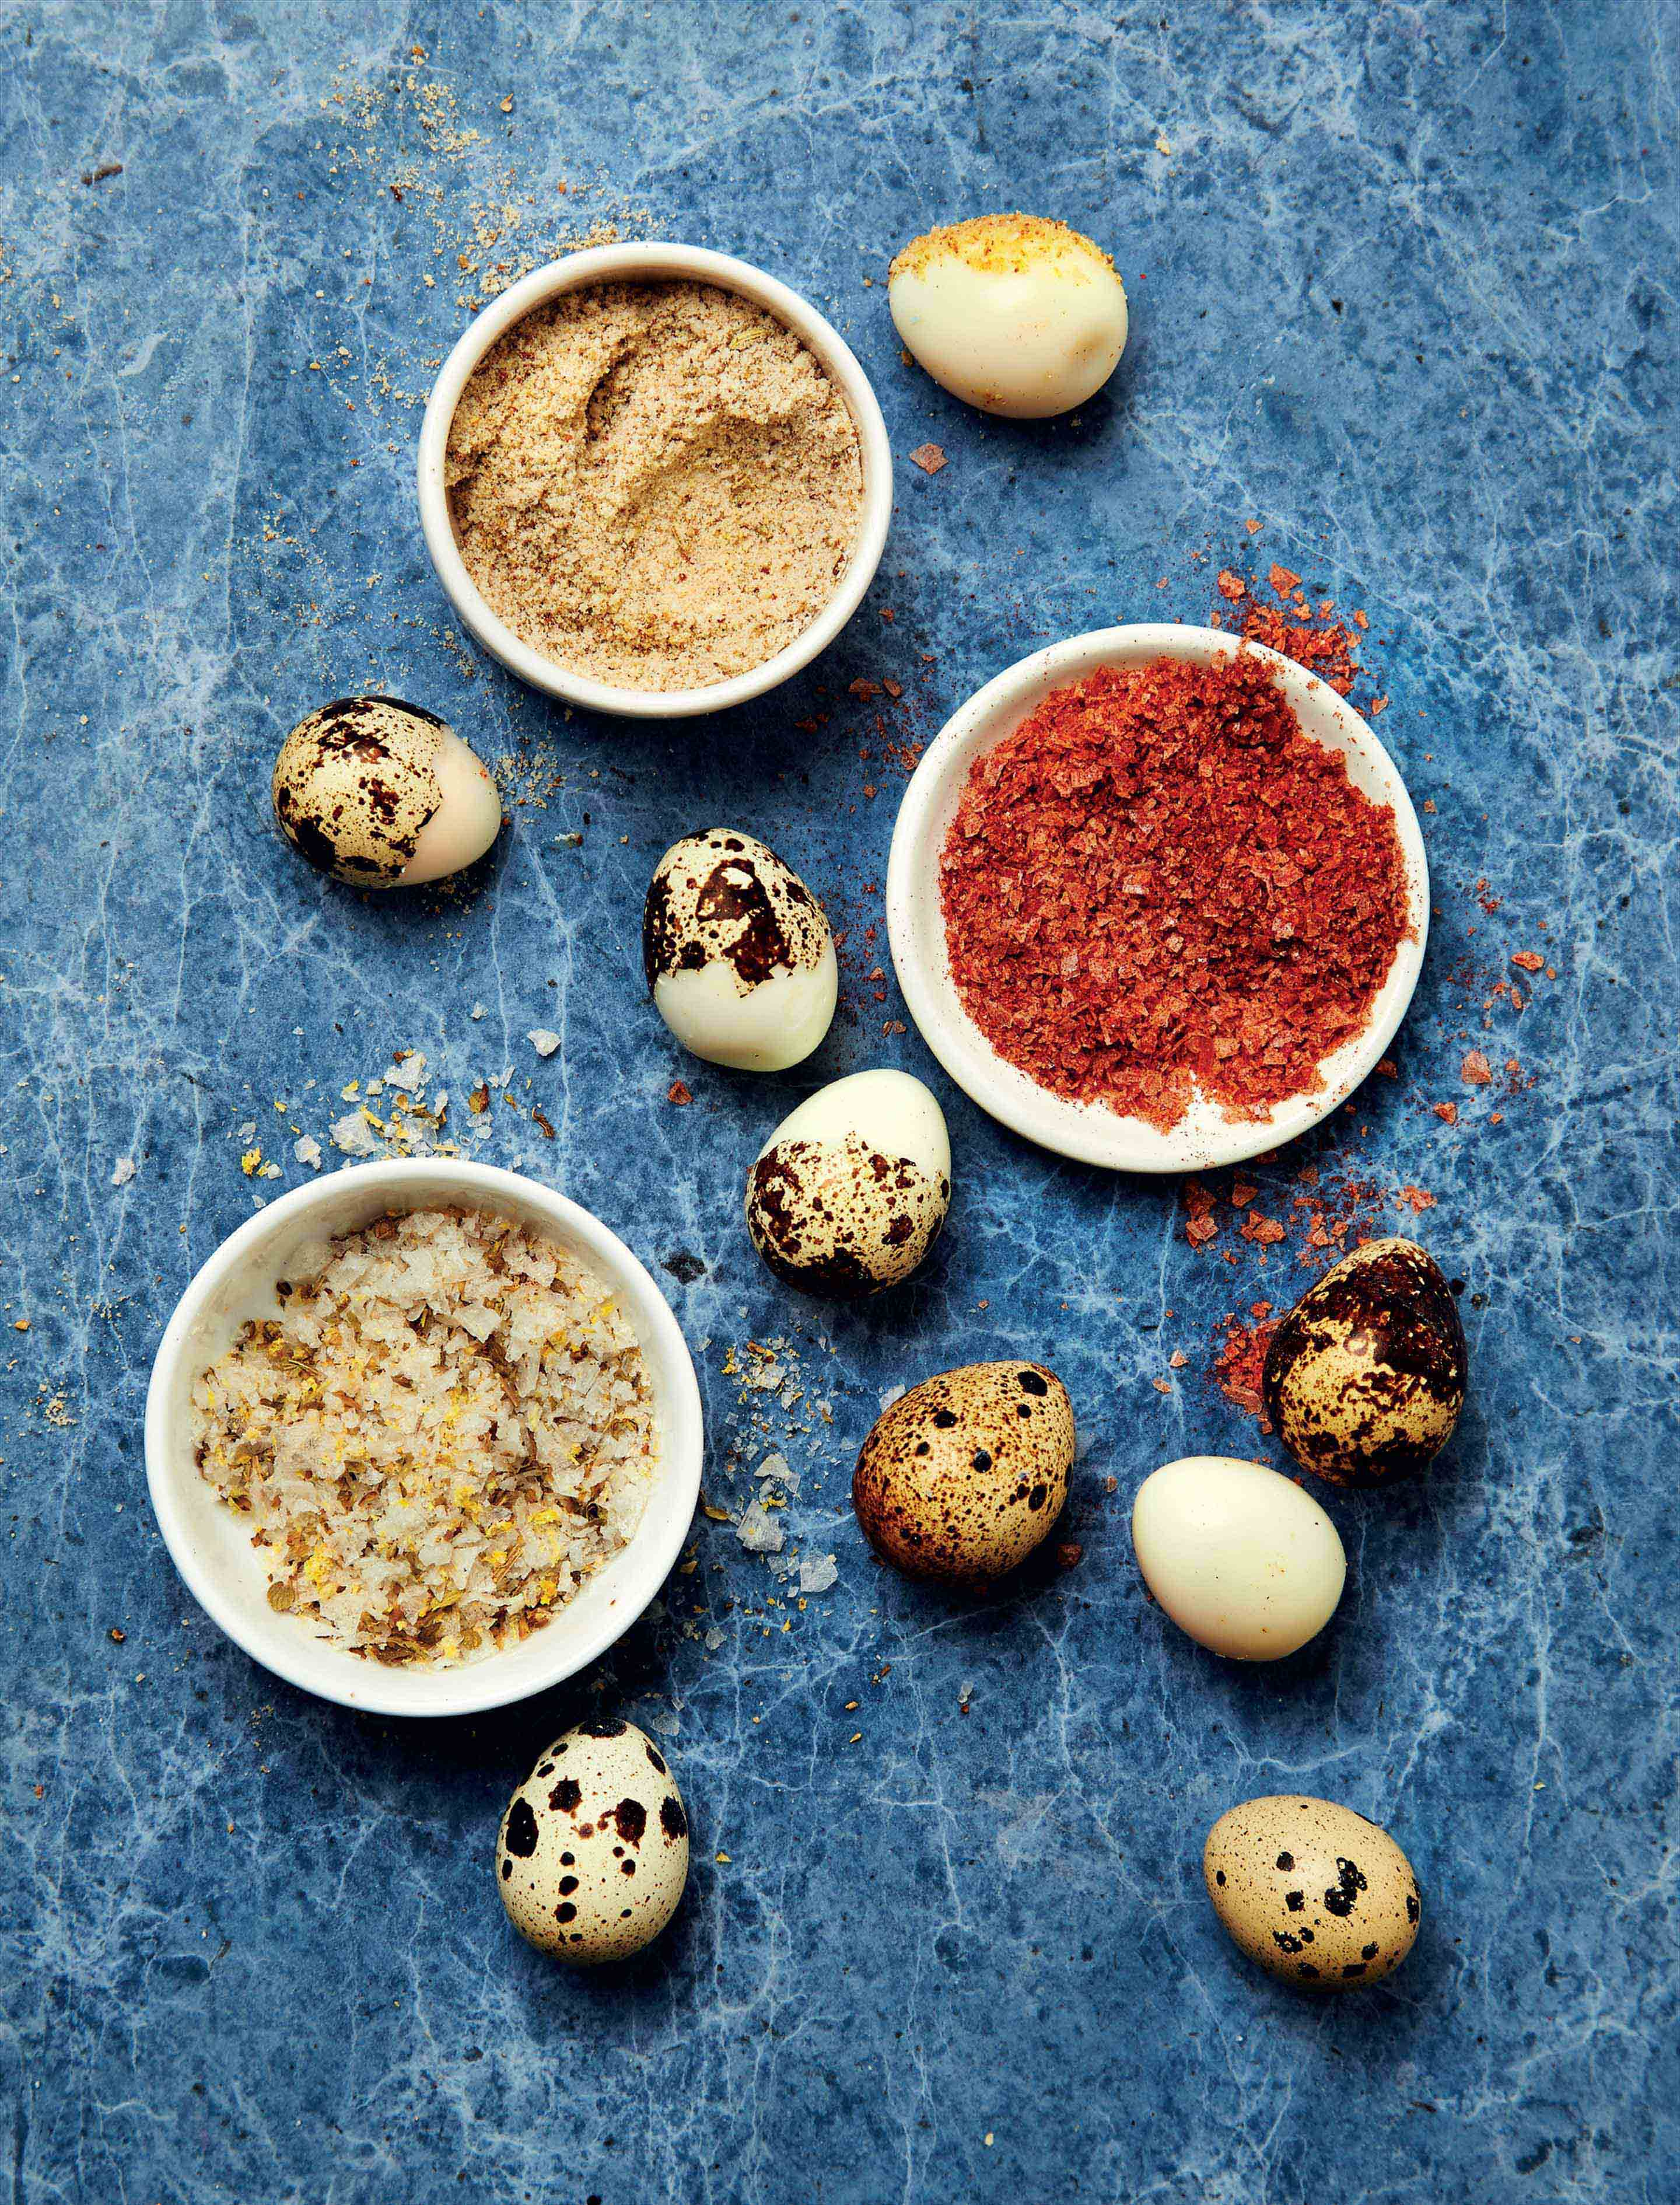 Quail eggs with flavoured salts